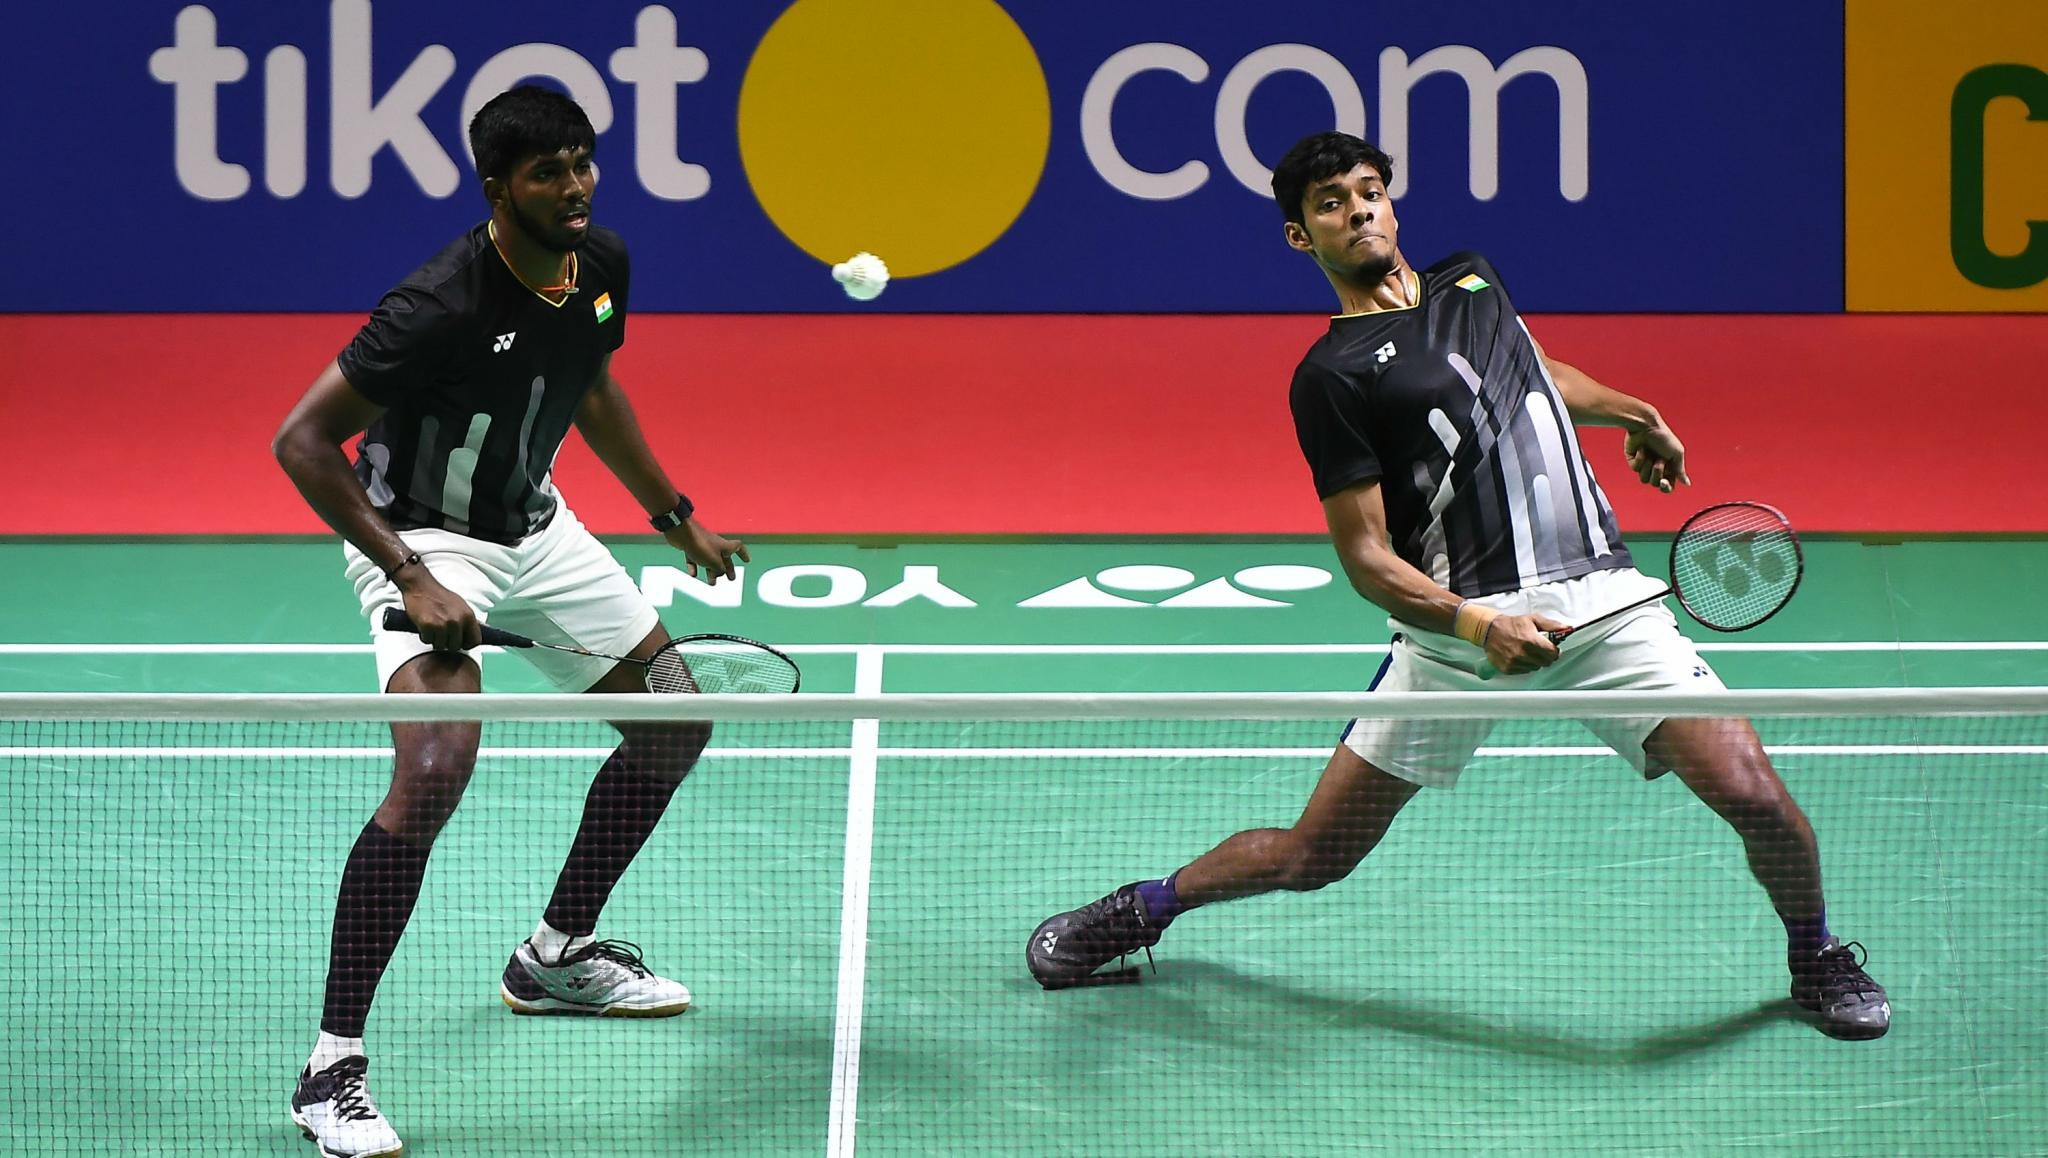 China Open 2019: Satwiksairaj Rankireddy-Chirag Shetty Progress to Quarter Finals, Other Indians Bow Out